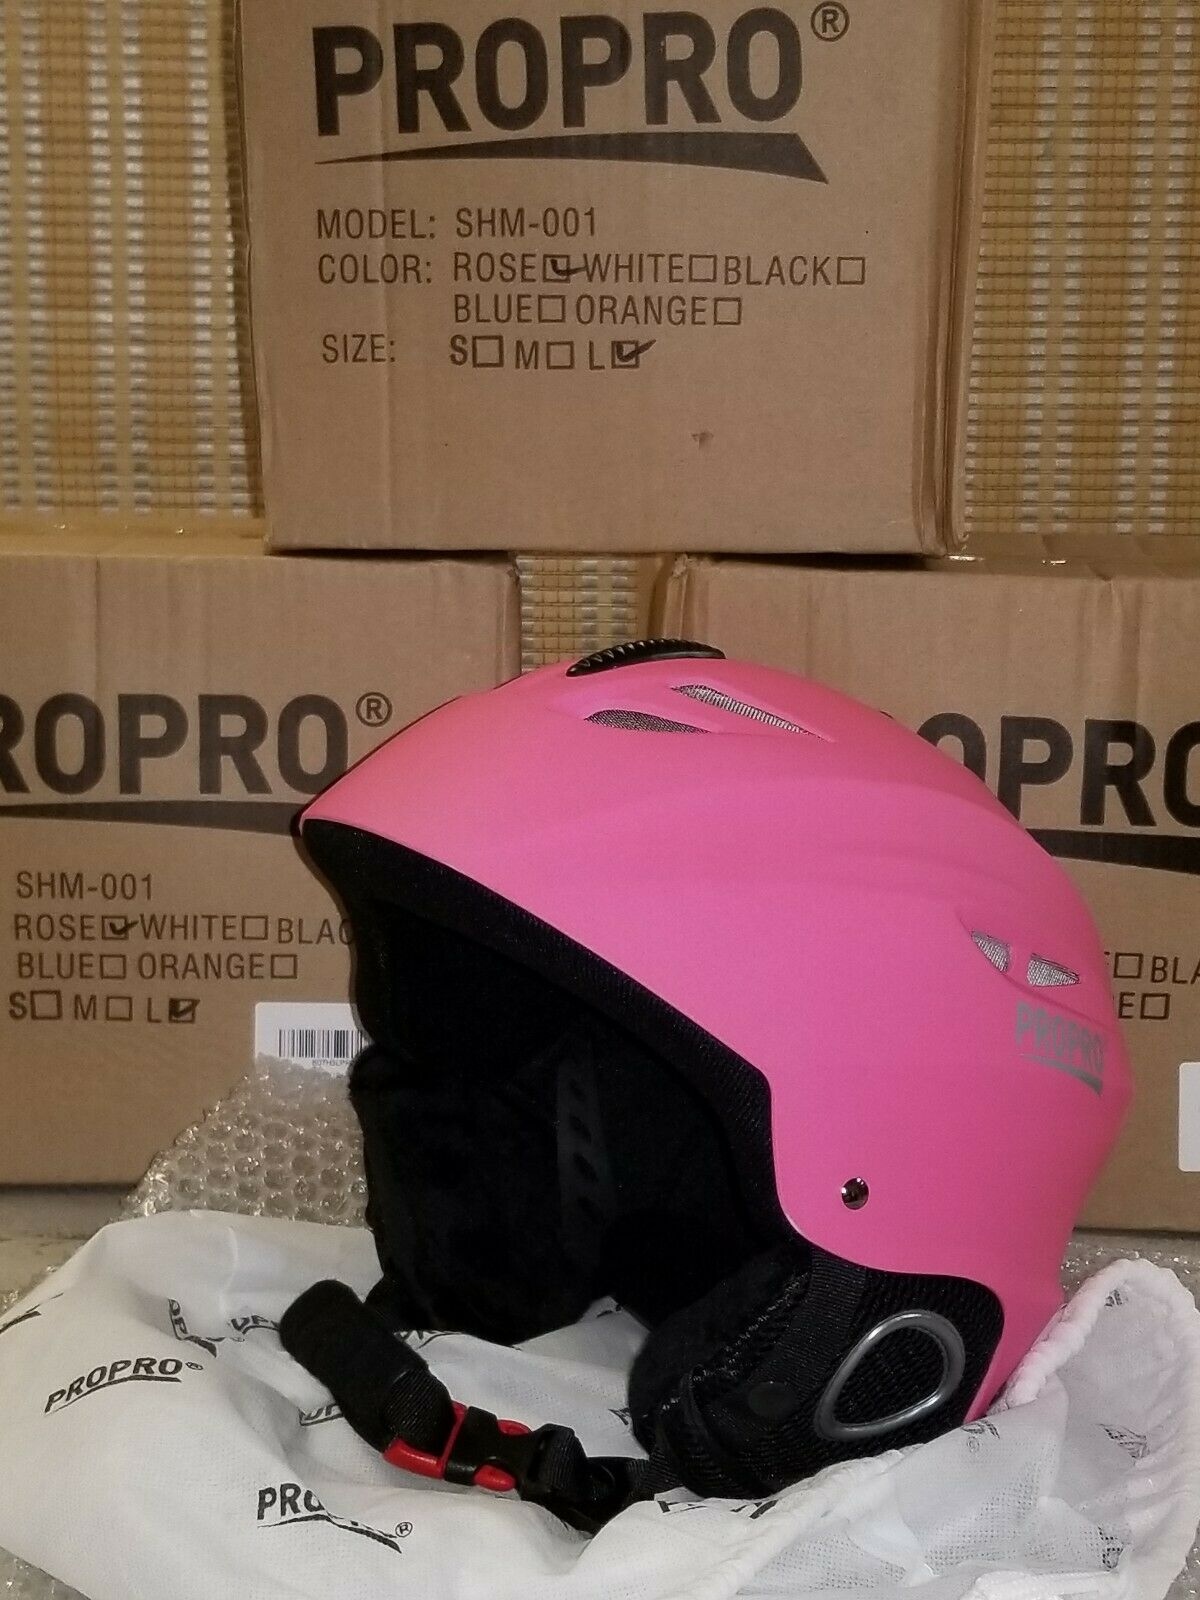 NIB Propro  Pink Ski  Snowboard Helmet Size Adult Large S board, Model SHM-001  with 100% quality and %100 service